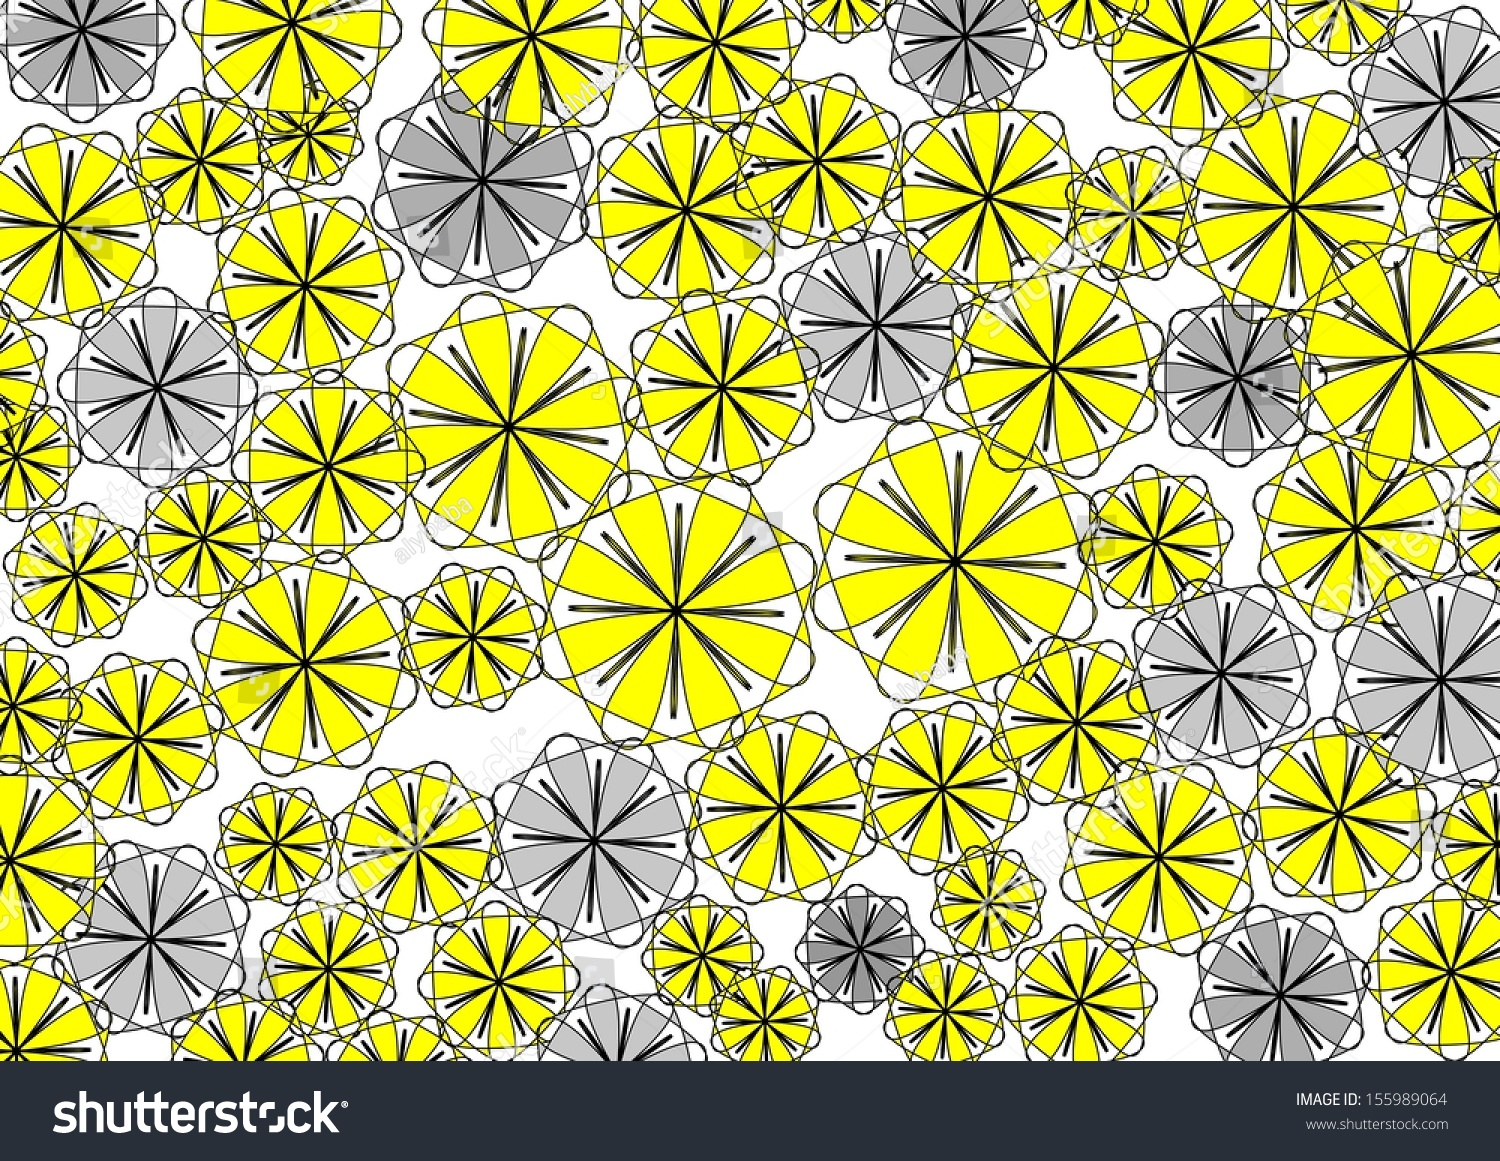 Perfect Decorative Modern Vibrant Circular Abstract Design With Floral And  Geometric Textured Motifs On A Plain White